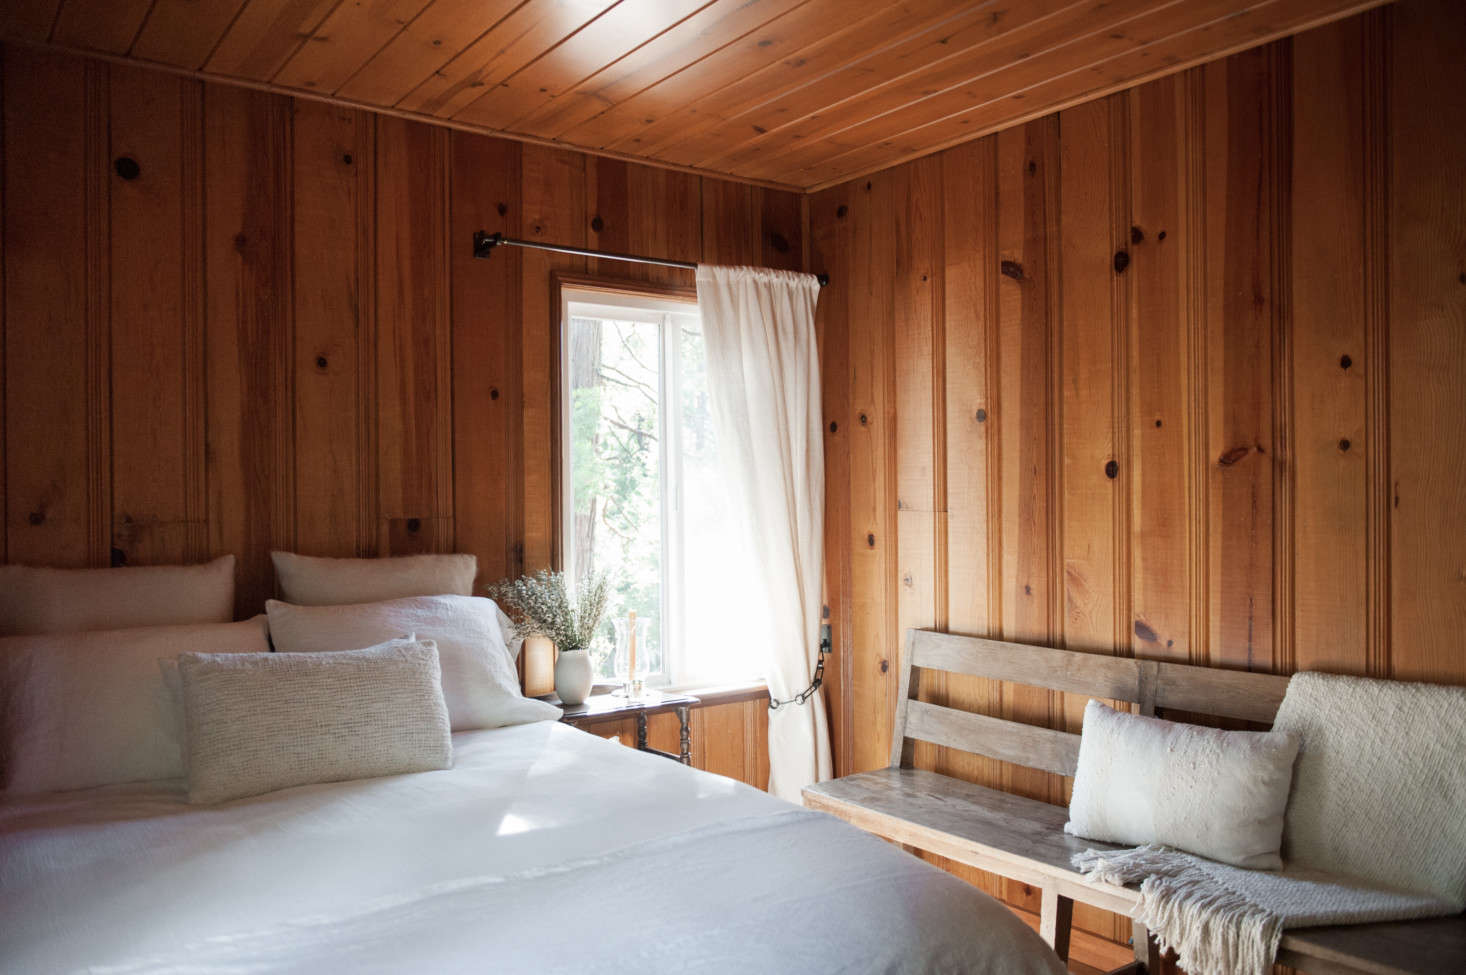 The paneling in the bedrooms was also left natural butsanded to mute its varnished finish. Shown here: the first floor guest room.